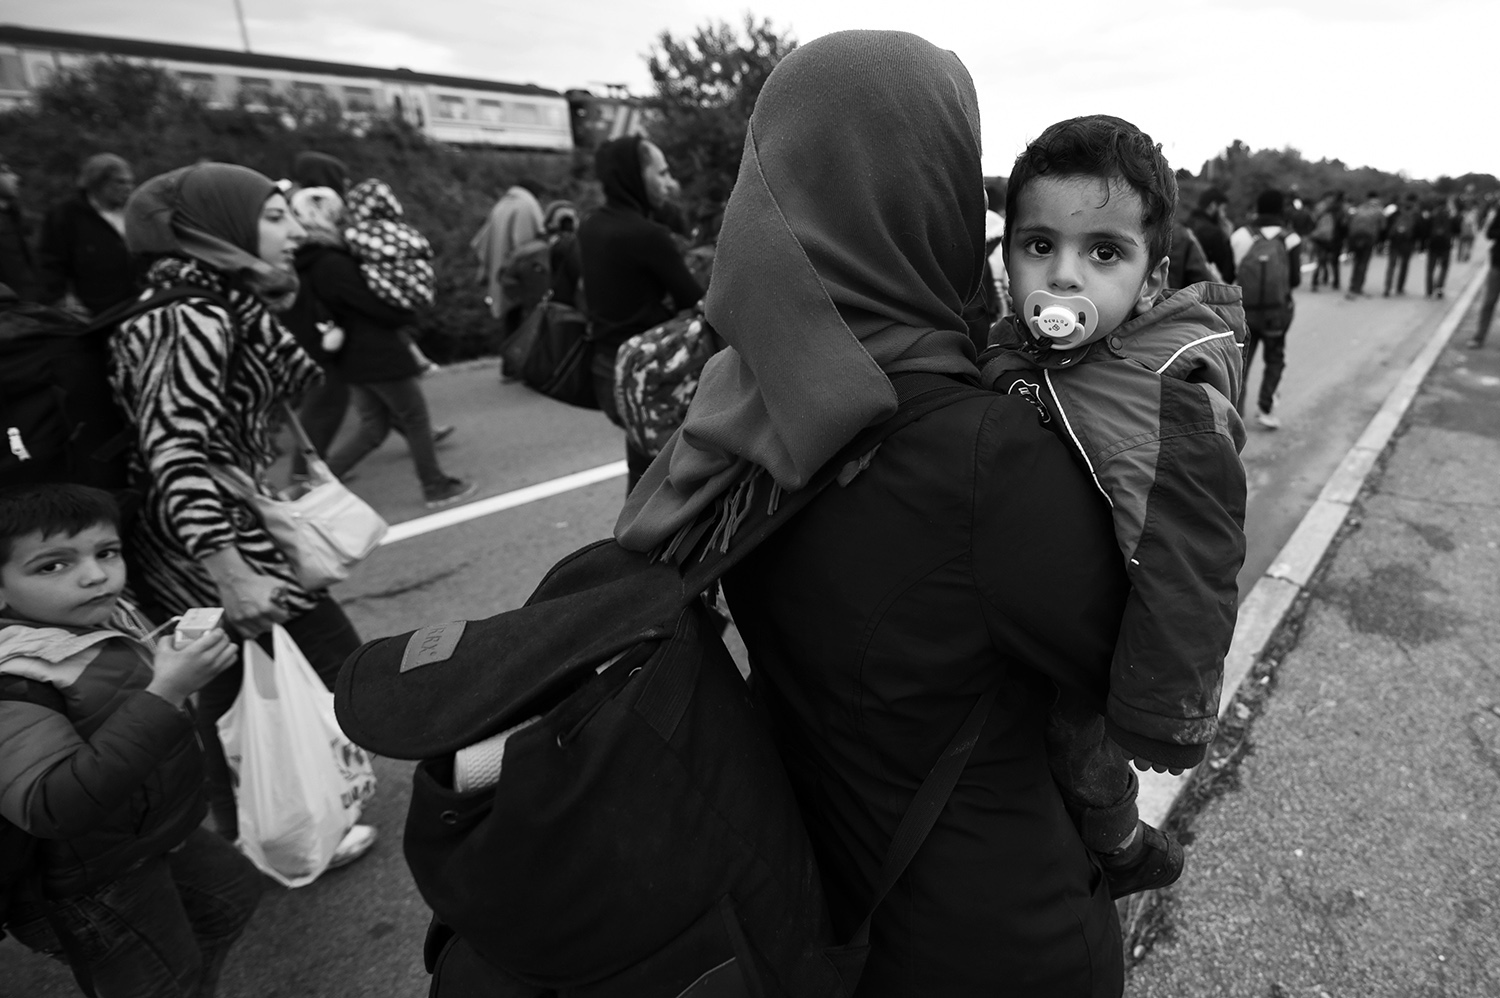 A woman carries a child as she leave the railway station Botovo, near Koprivnica, Croatia. Several thousand refugees arrived by train and started to walk towards the Hungarian border, which will be closed after a few hours.